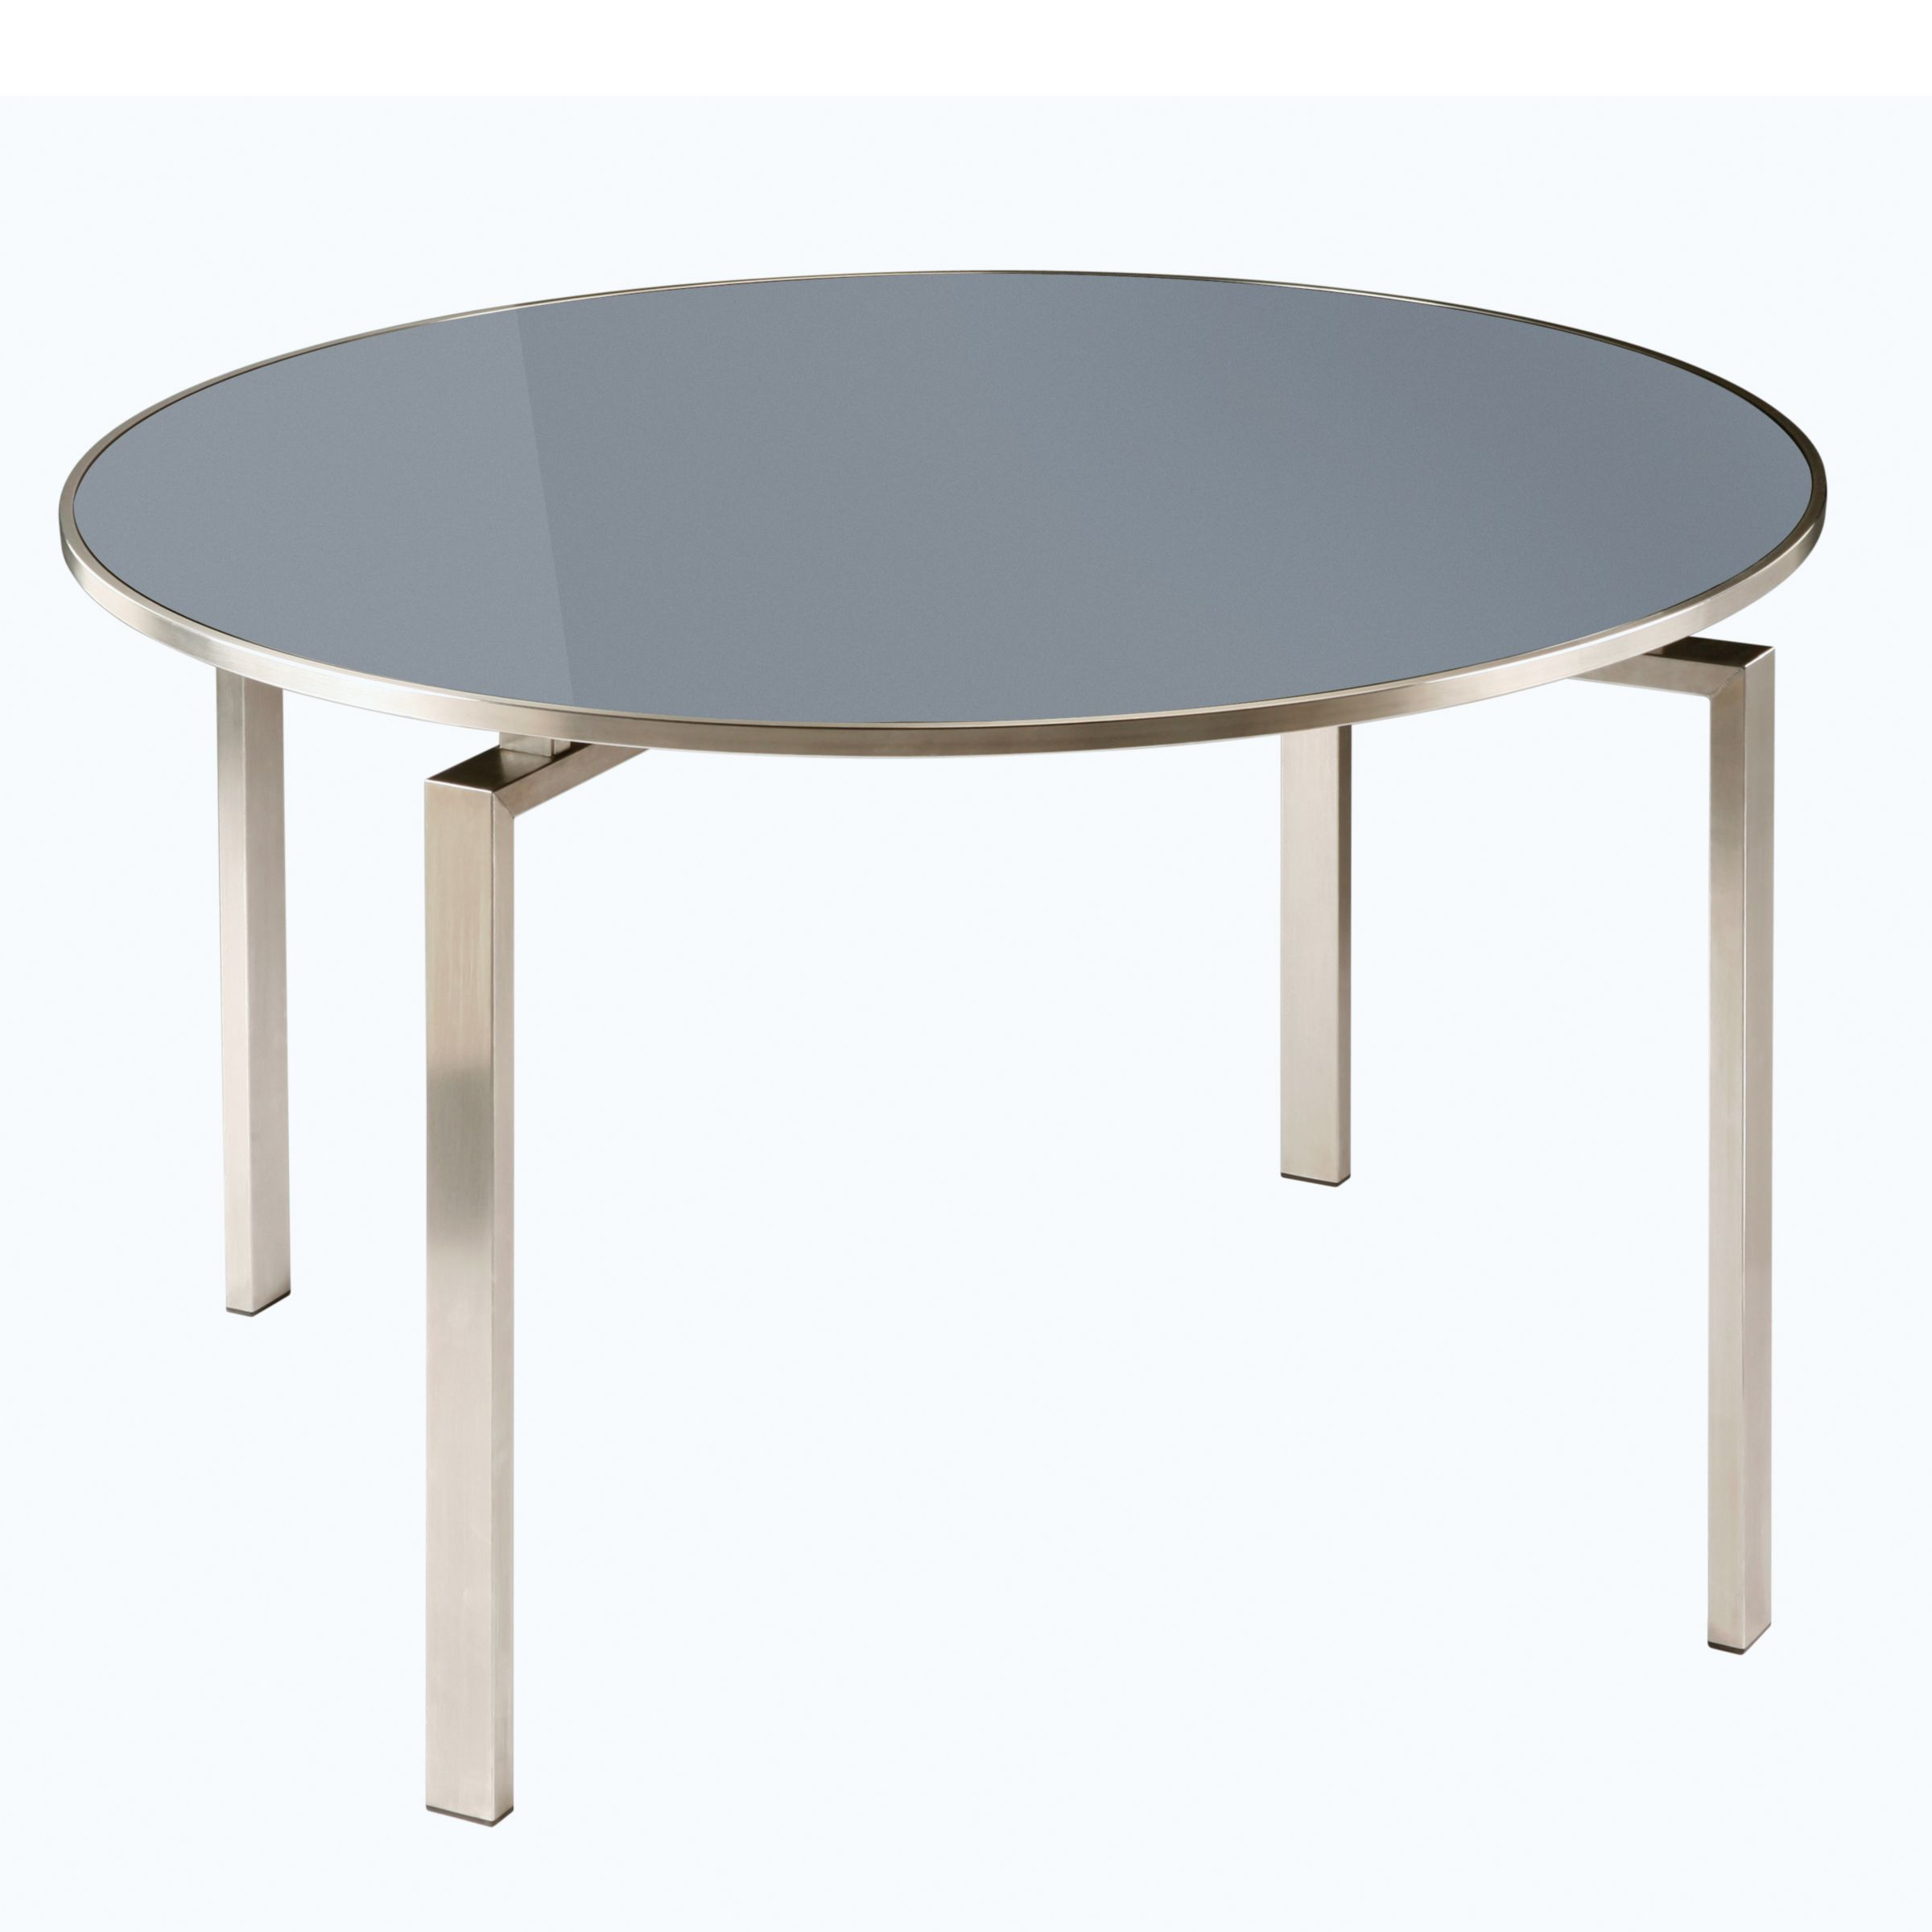 barlow tyrie round tables : 230877904 from www.comparestoreprices.co.uk size 1600 x 1600 jpeg 108kB